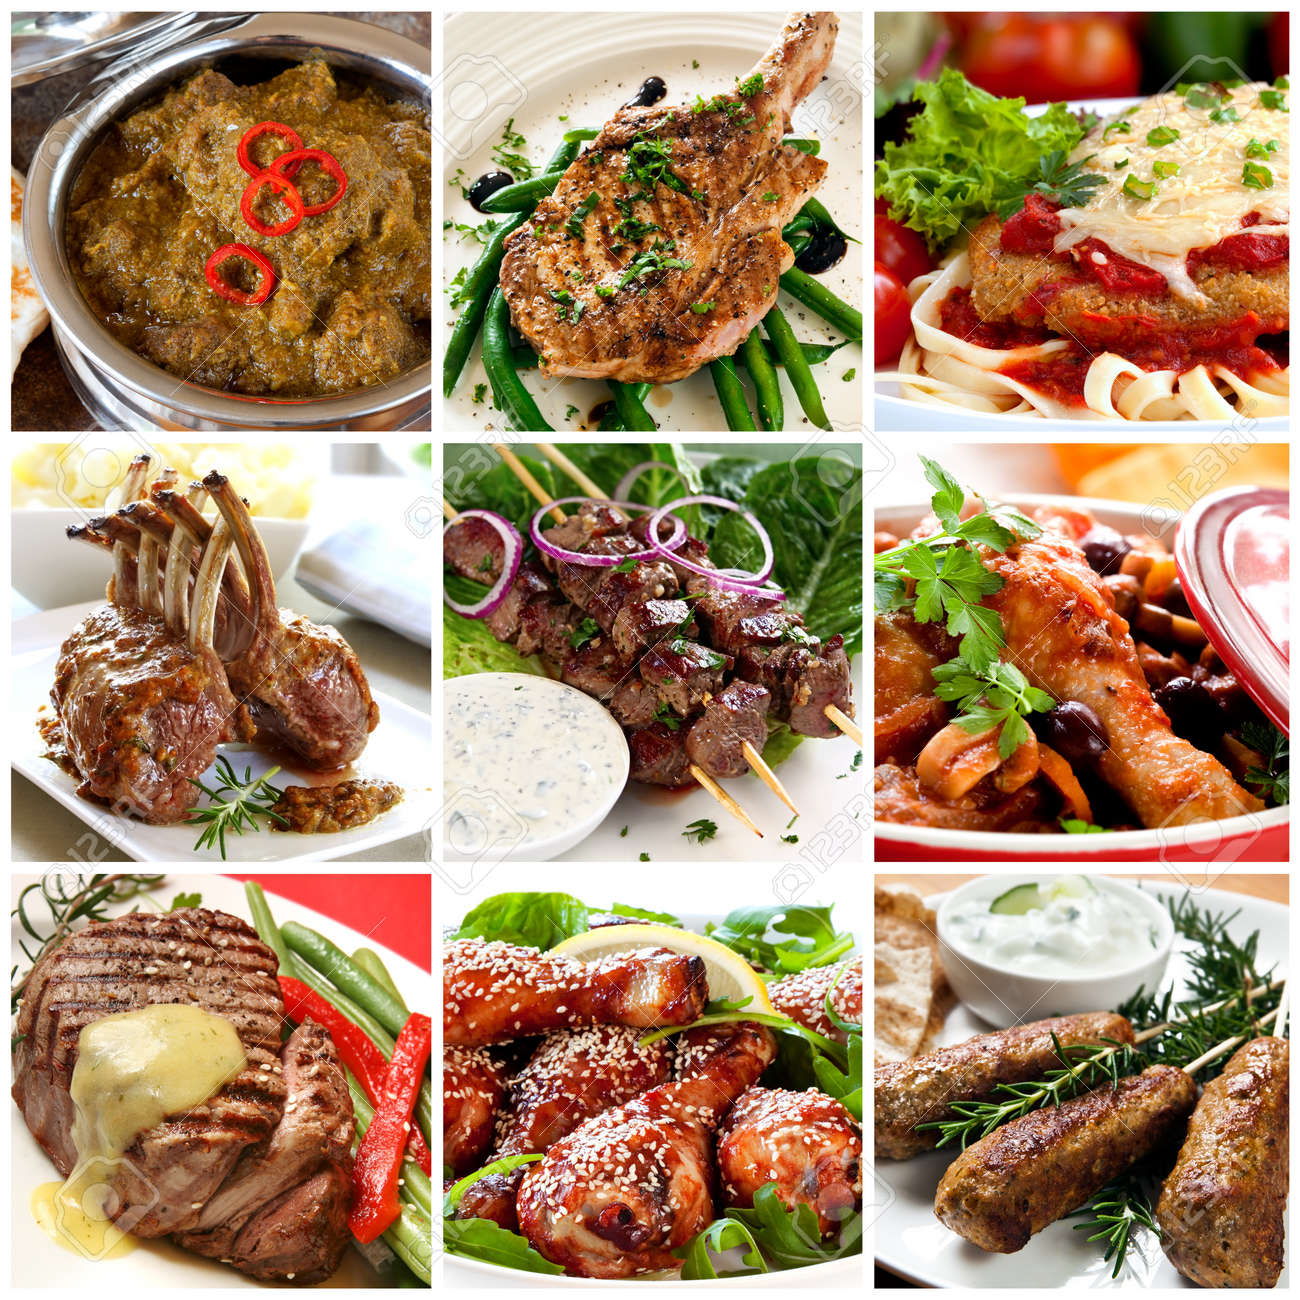 http://previews.123rf.com/images/robynmac/robynmac1208/robynmac120800012/14855686-Collection-of-warm-meat-dishes-Includes-lamb-pork-chicken--Stock-Photo.jpg